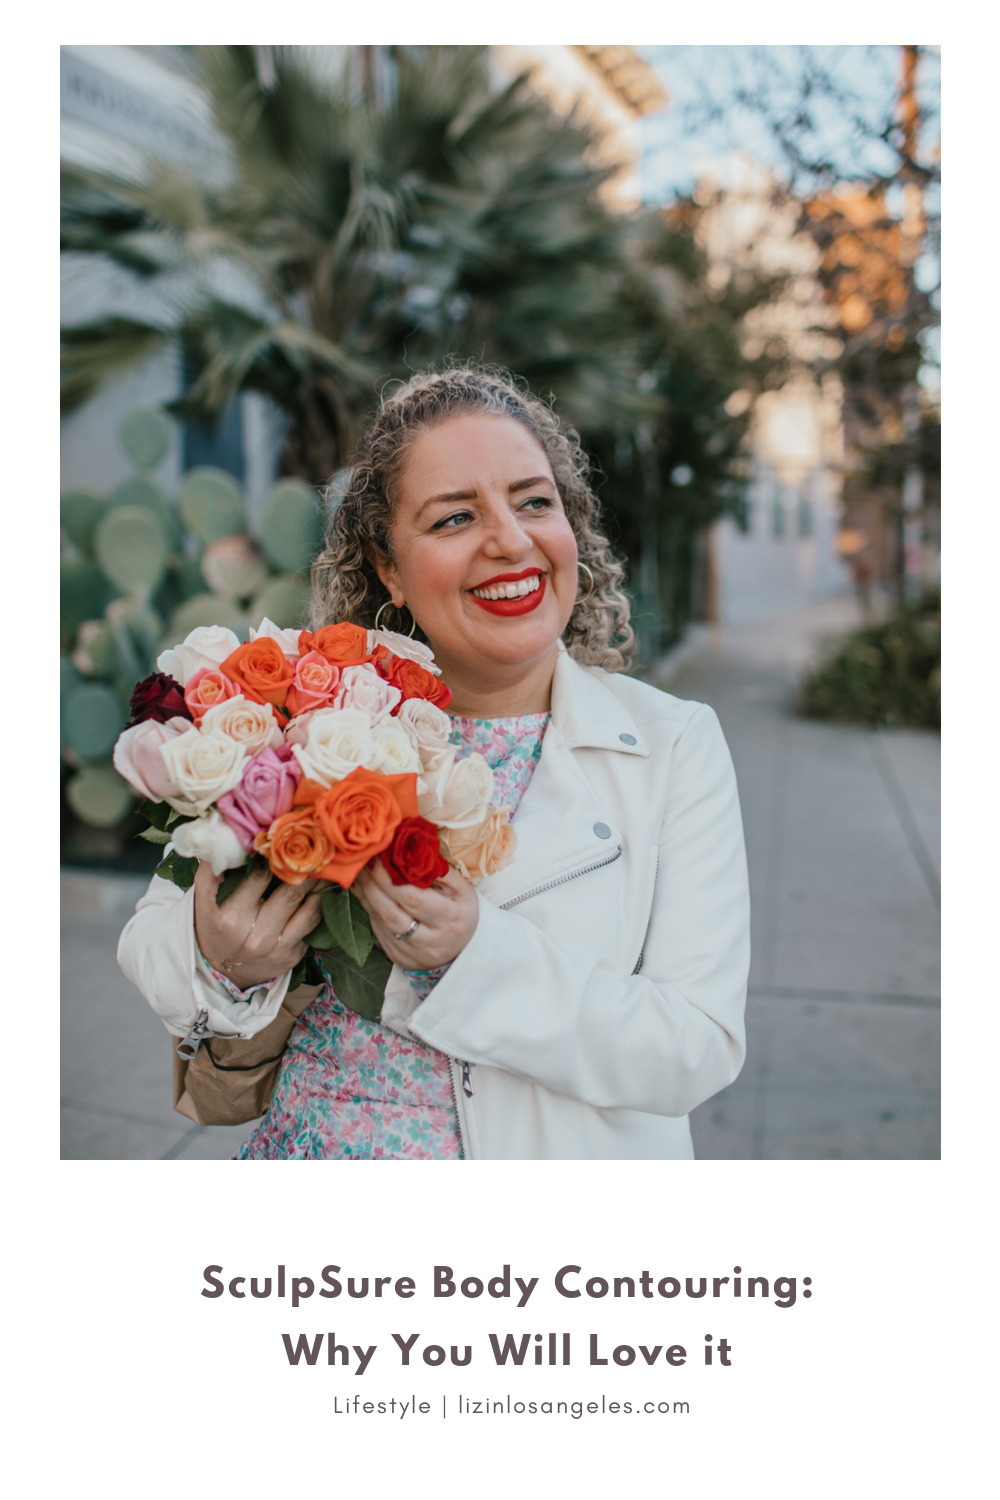 SculpSure Body Contouring Review by Liz in Los Angeles, Los Angeles Lifestyle Blogger, an image of a blonde women holding flowers after a face treatment